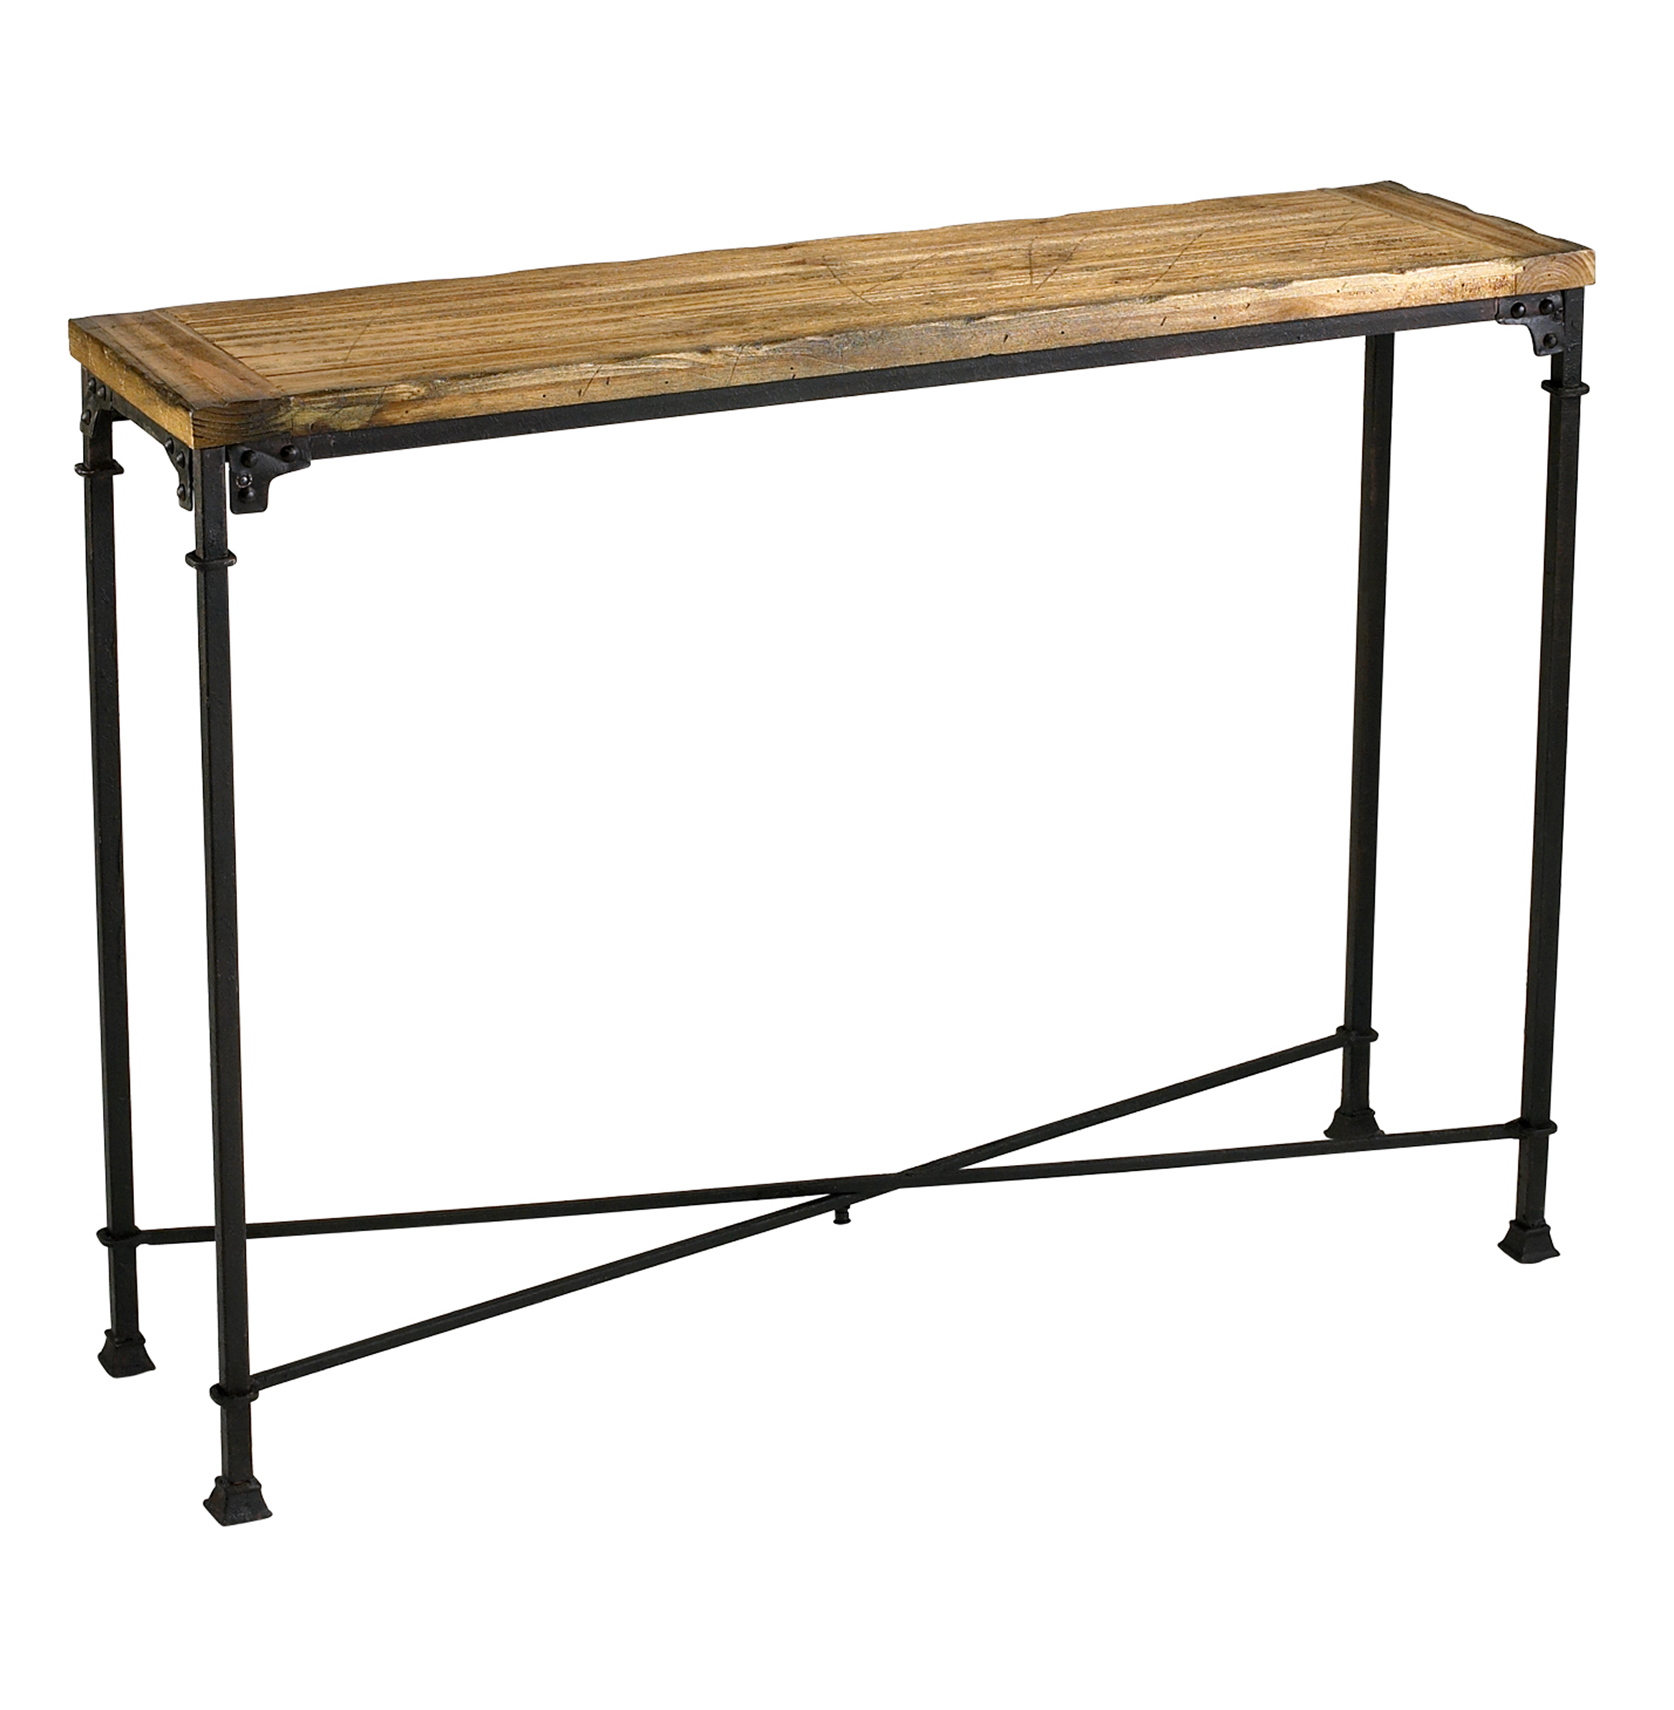 Cunningham reclaimed wood industrial loft style modern Metal console table